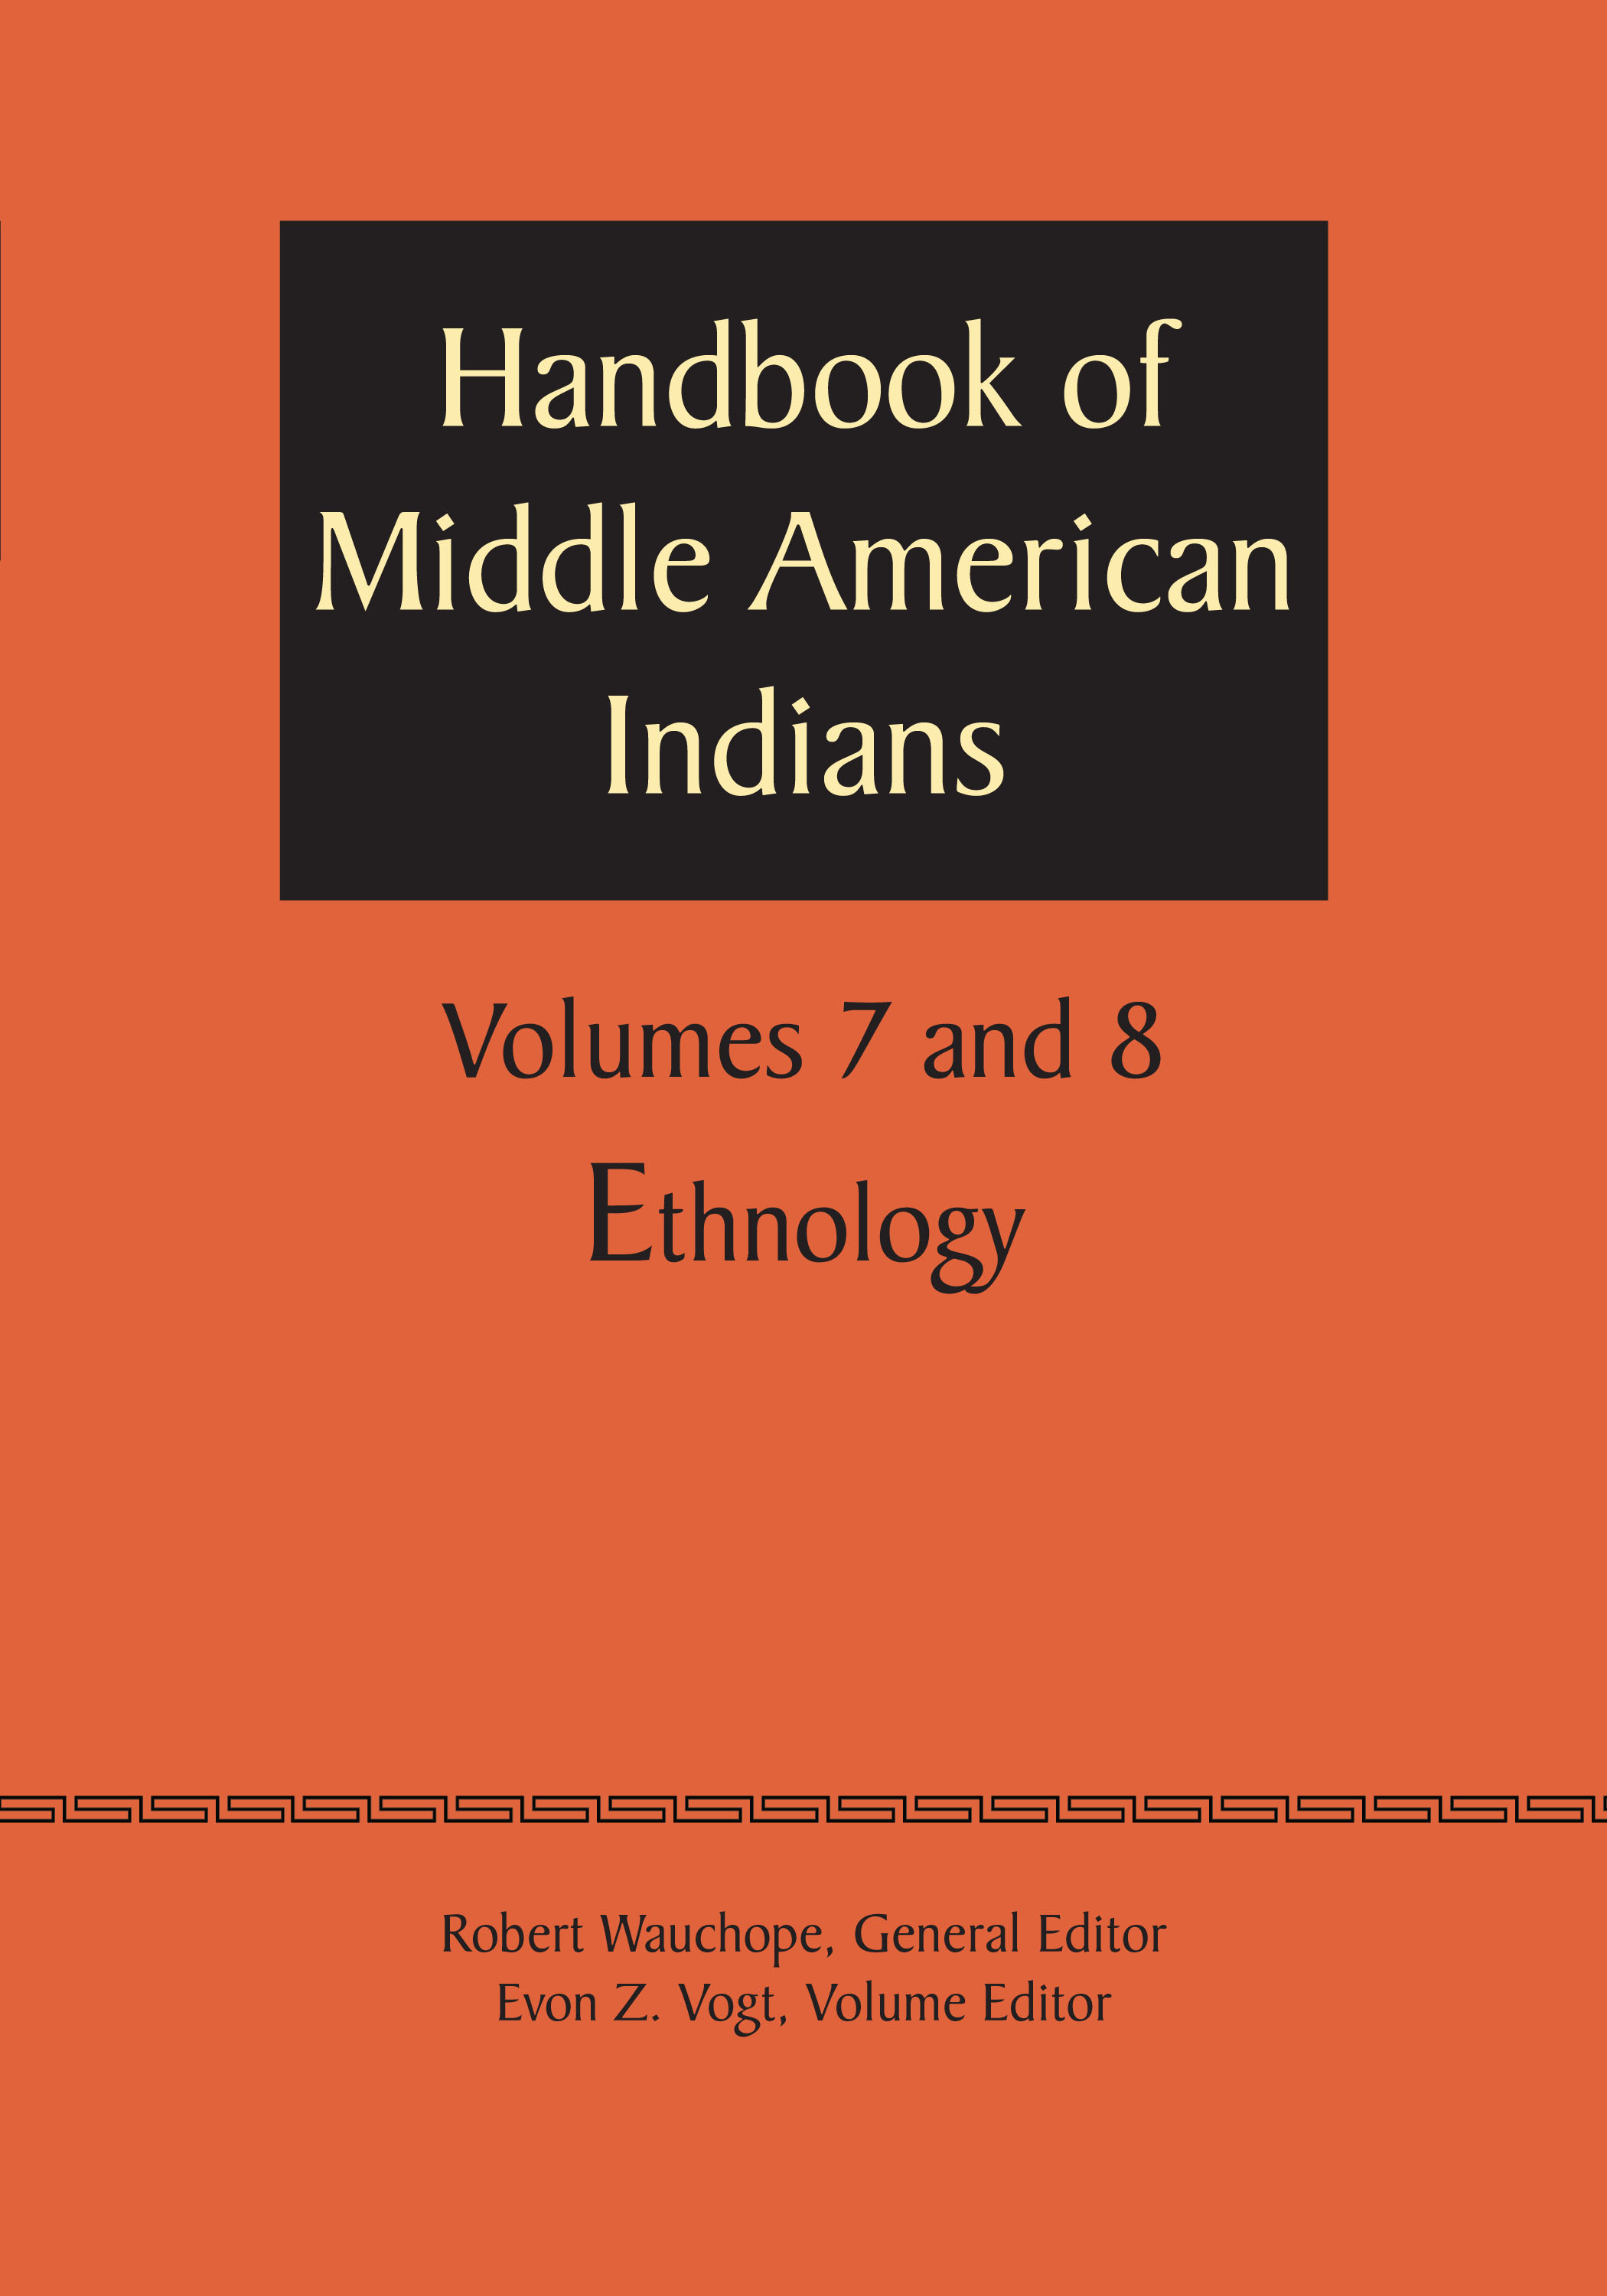 Cover of Handbook of Middle American Indians, Volume 7/8